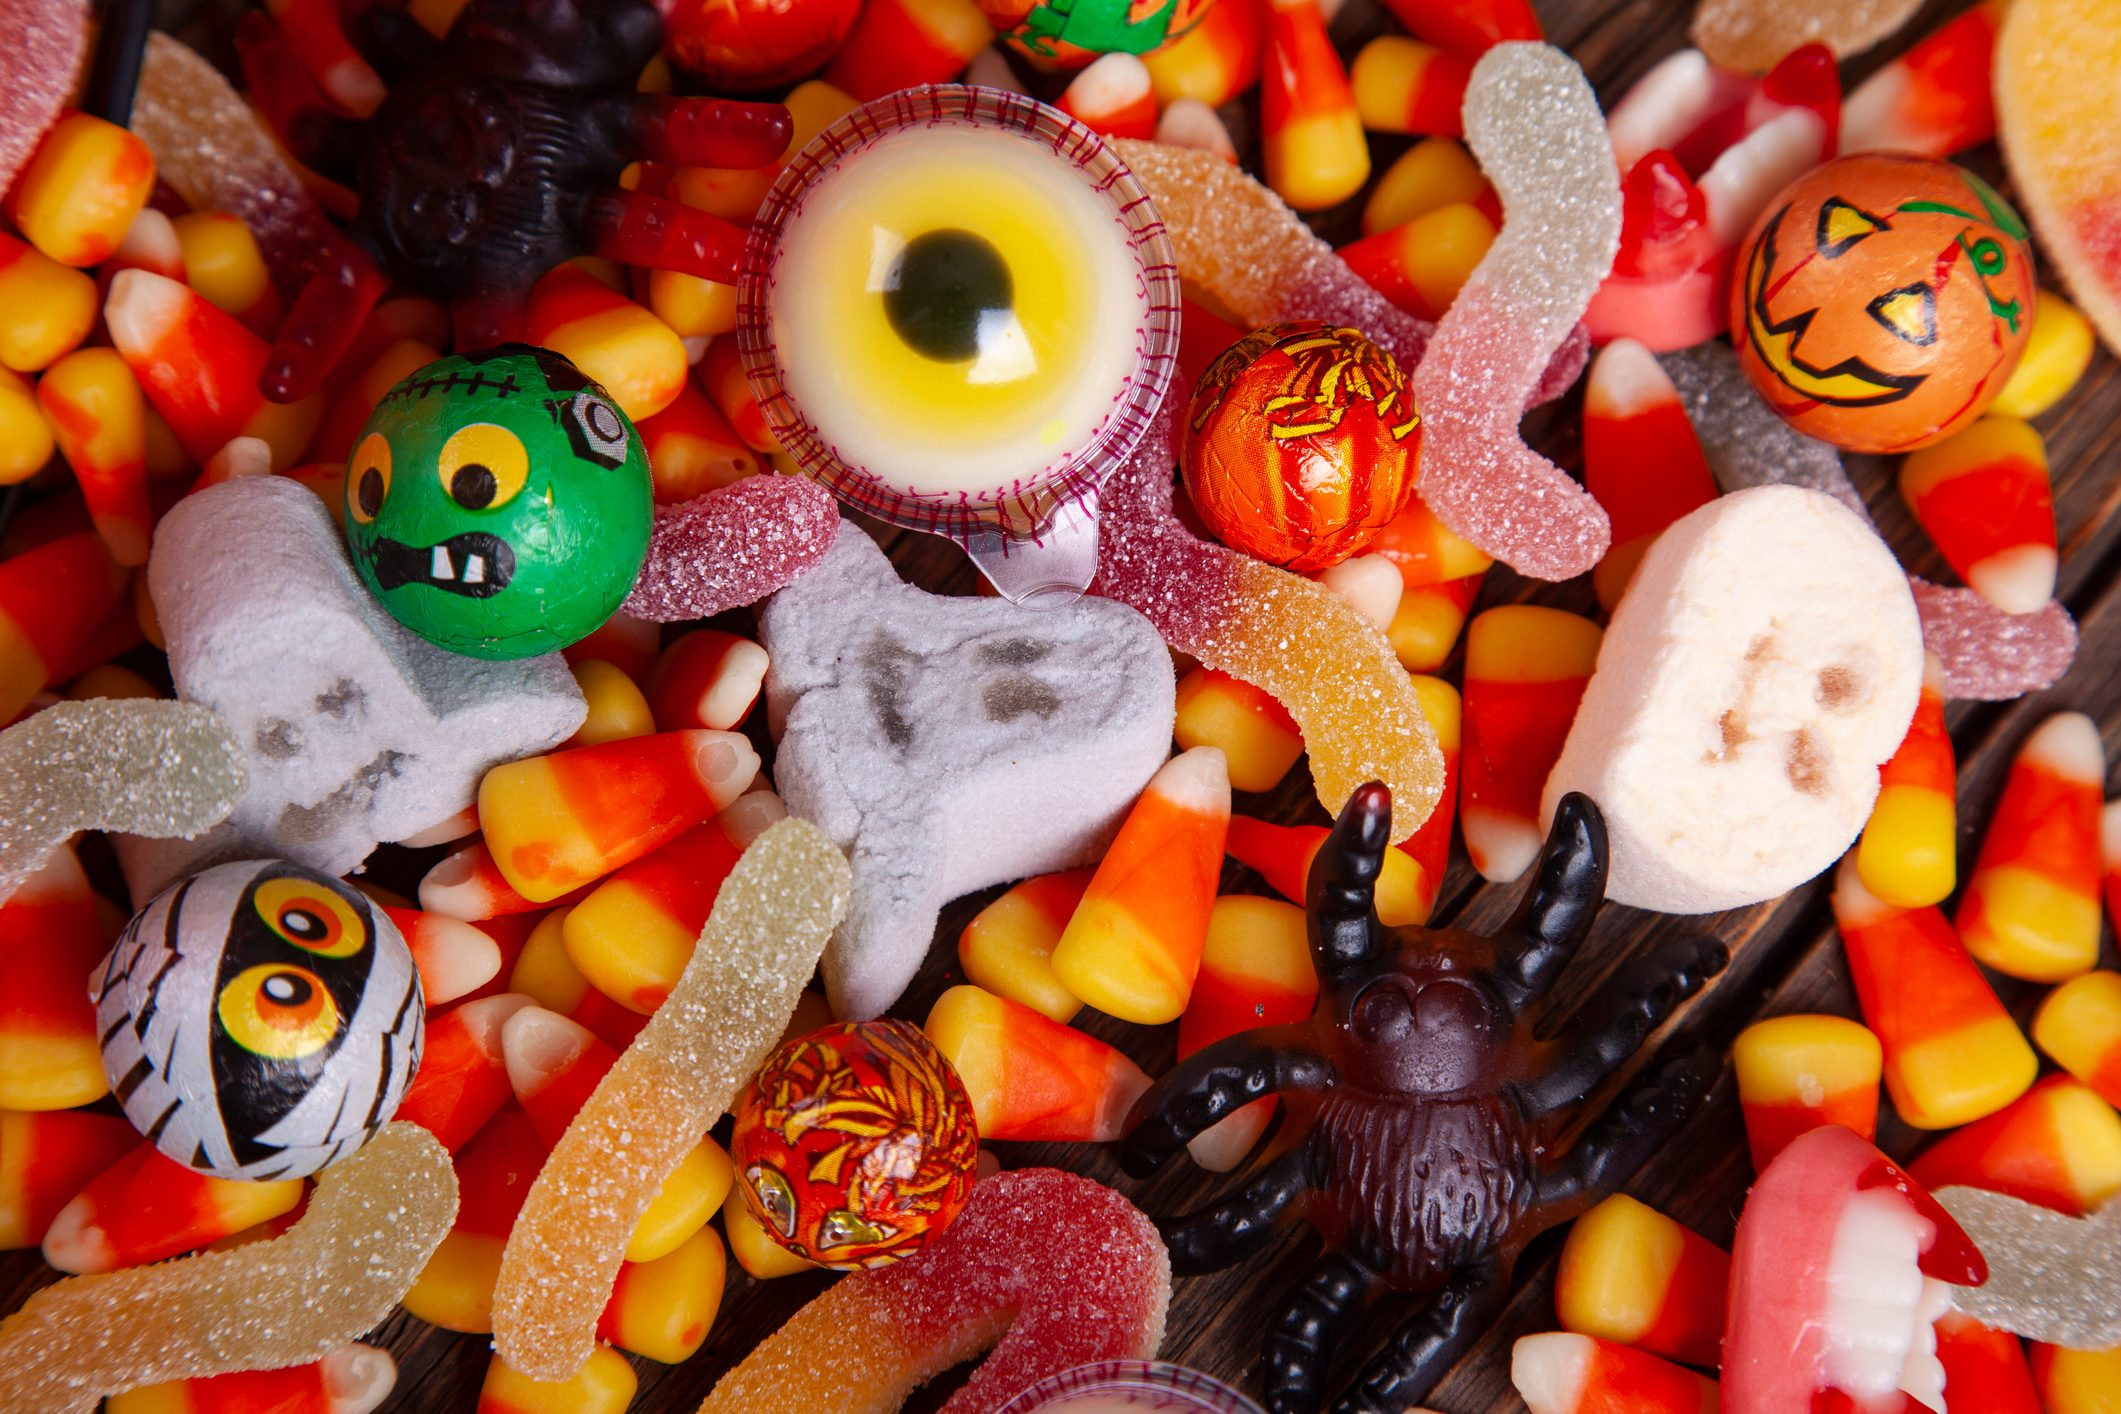 Top 4 Worst Halloween Candy for Your Teeth, According to a Dentist